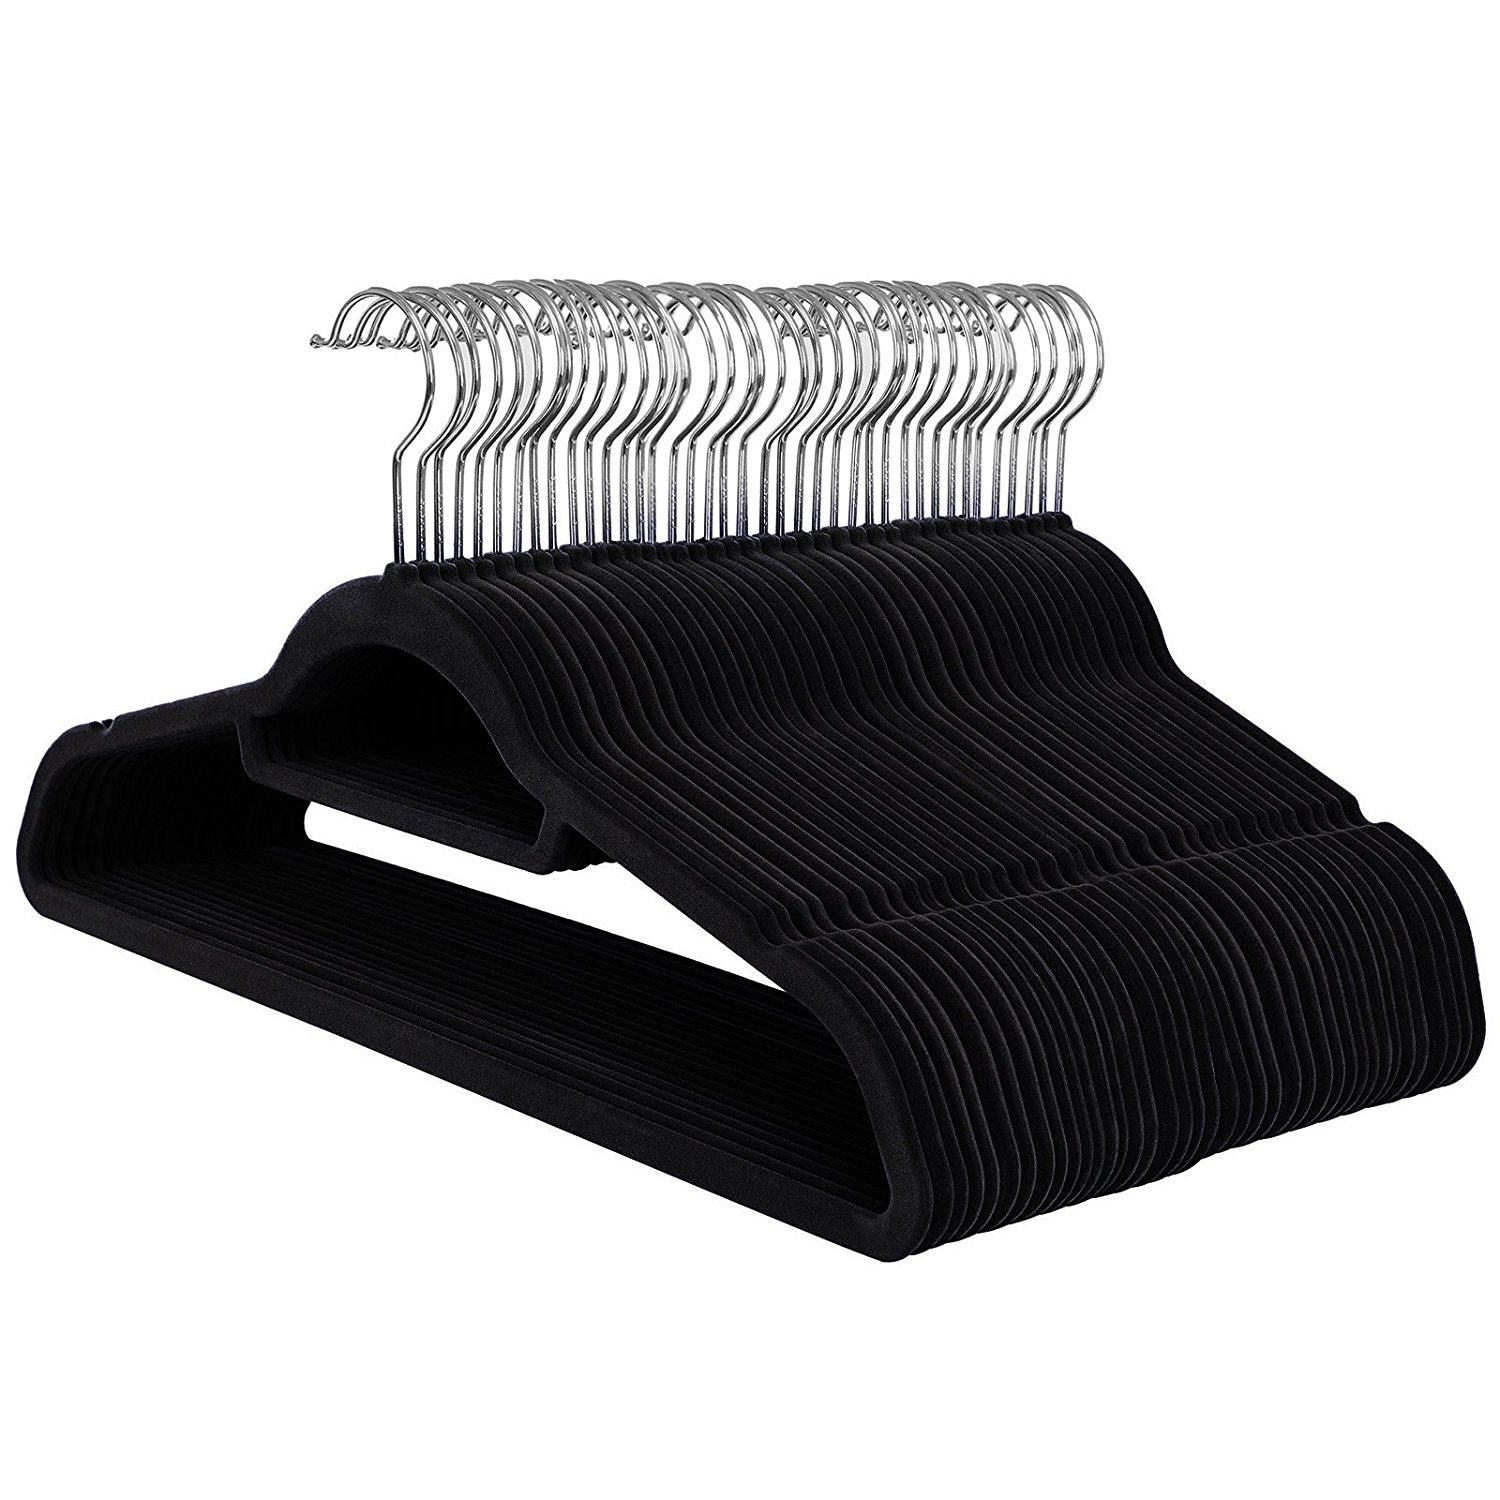 Lot 144 - SONGMICS Velvet Hangers, approx 50 Pack, Ultra Thin